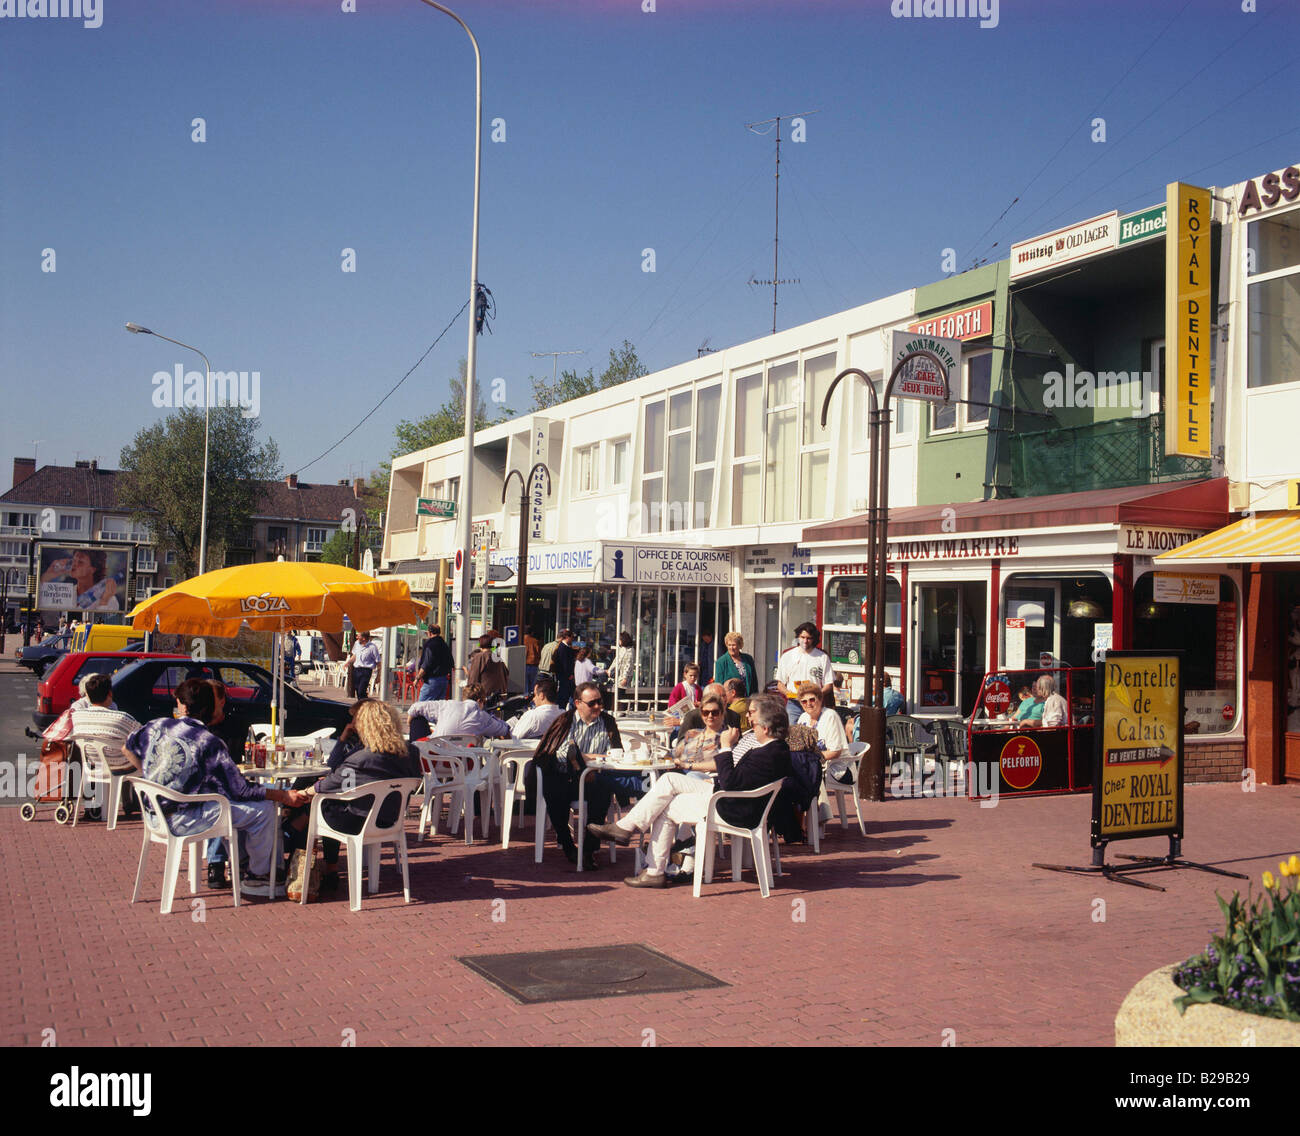 FRANCE Picardy Calais cafe Date 10 06 2008 Ref ZB616 114871 0008 COMPULSORY CREDIT World Pictures Photoshot Stock Photo